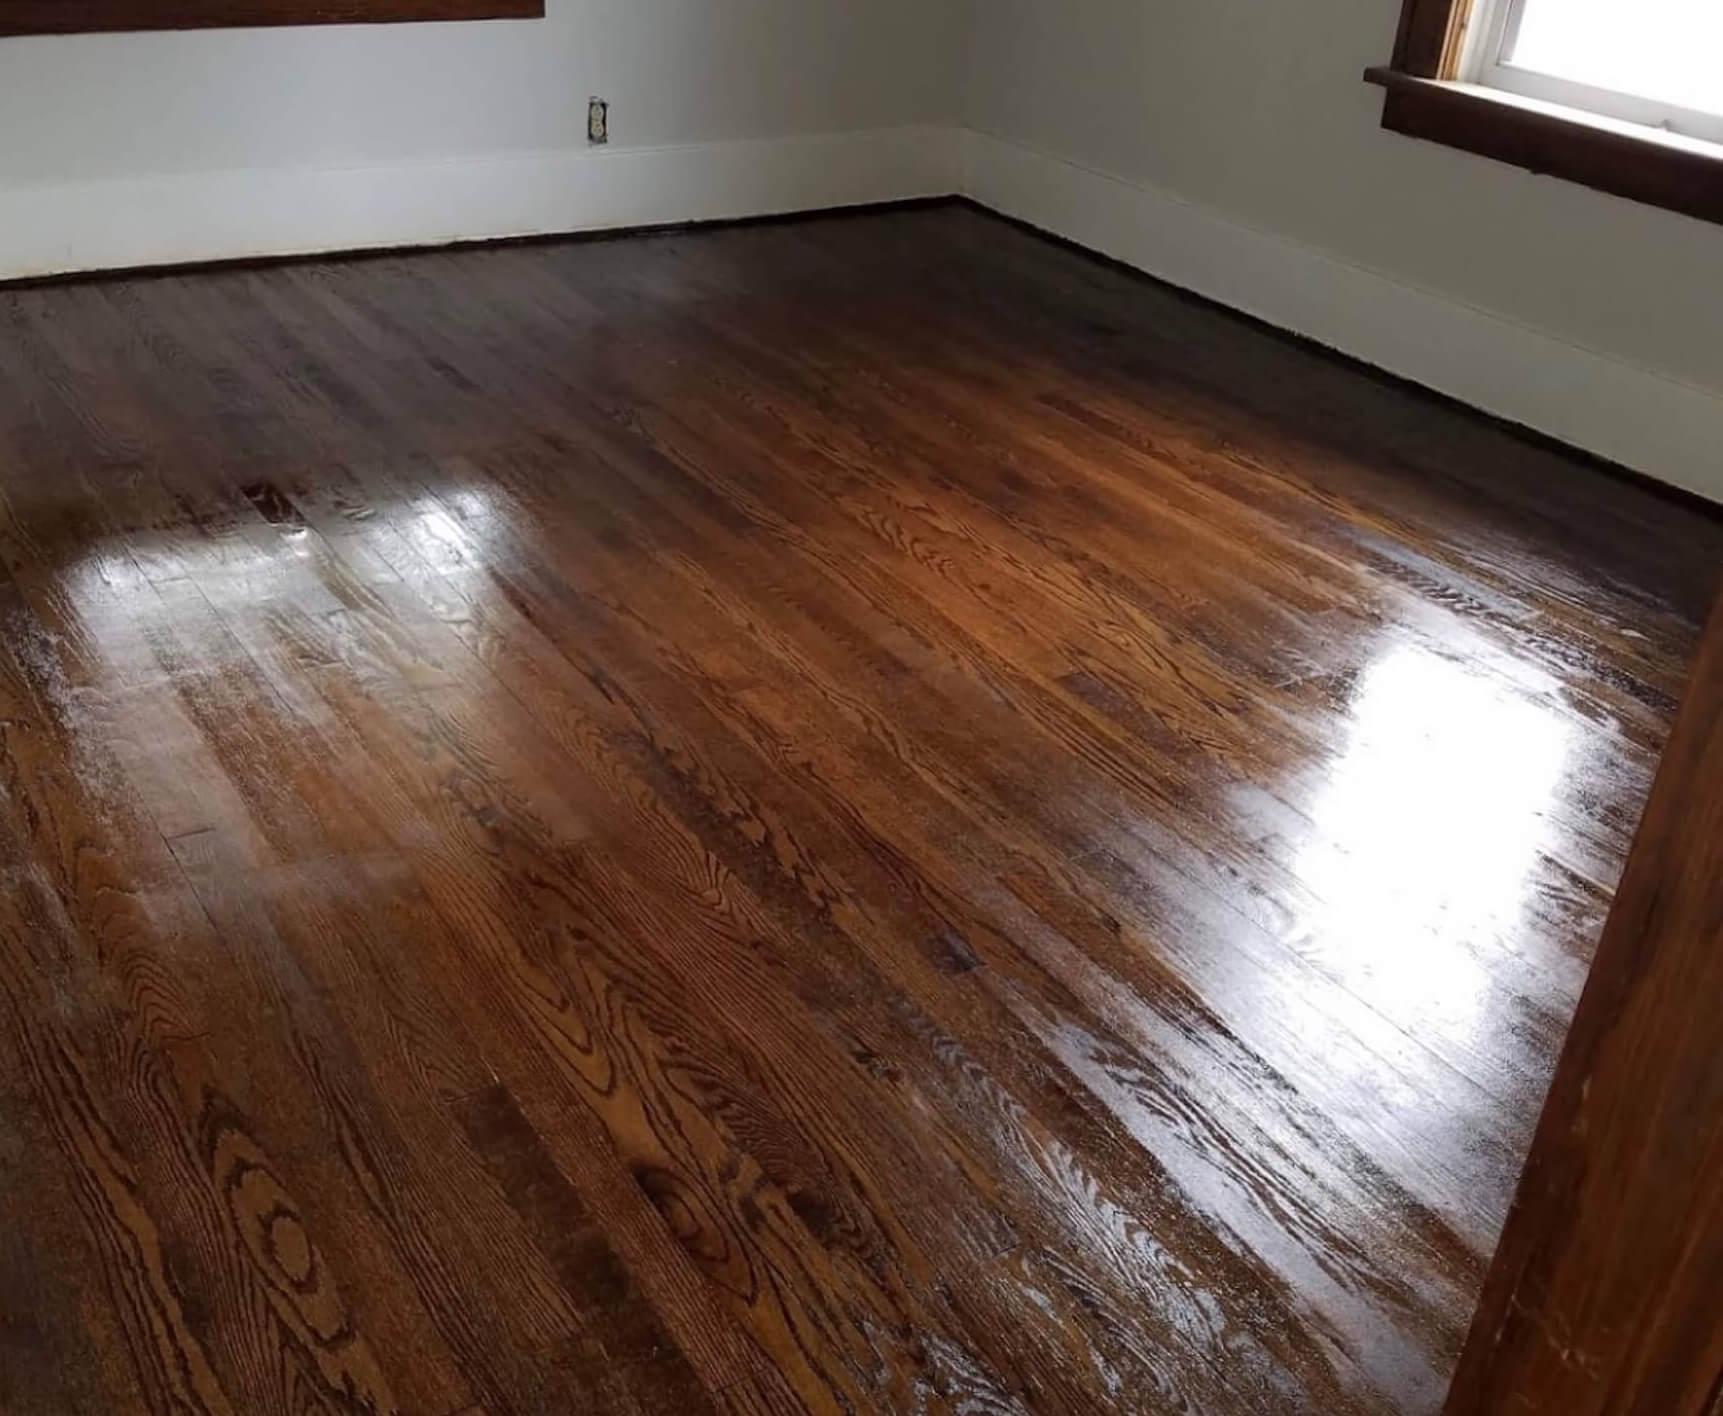 a fabulous floors chicago completed hardwood floor refinishing project.